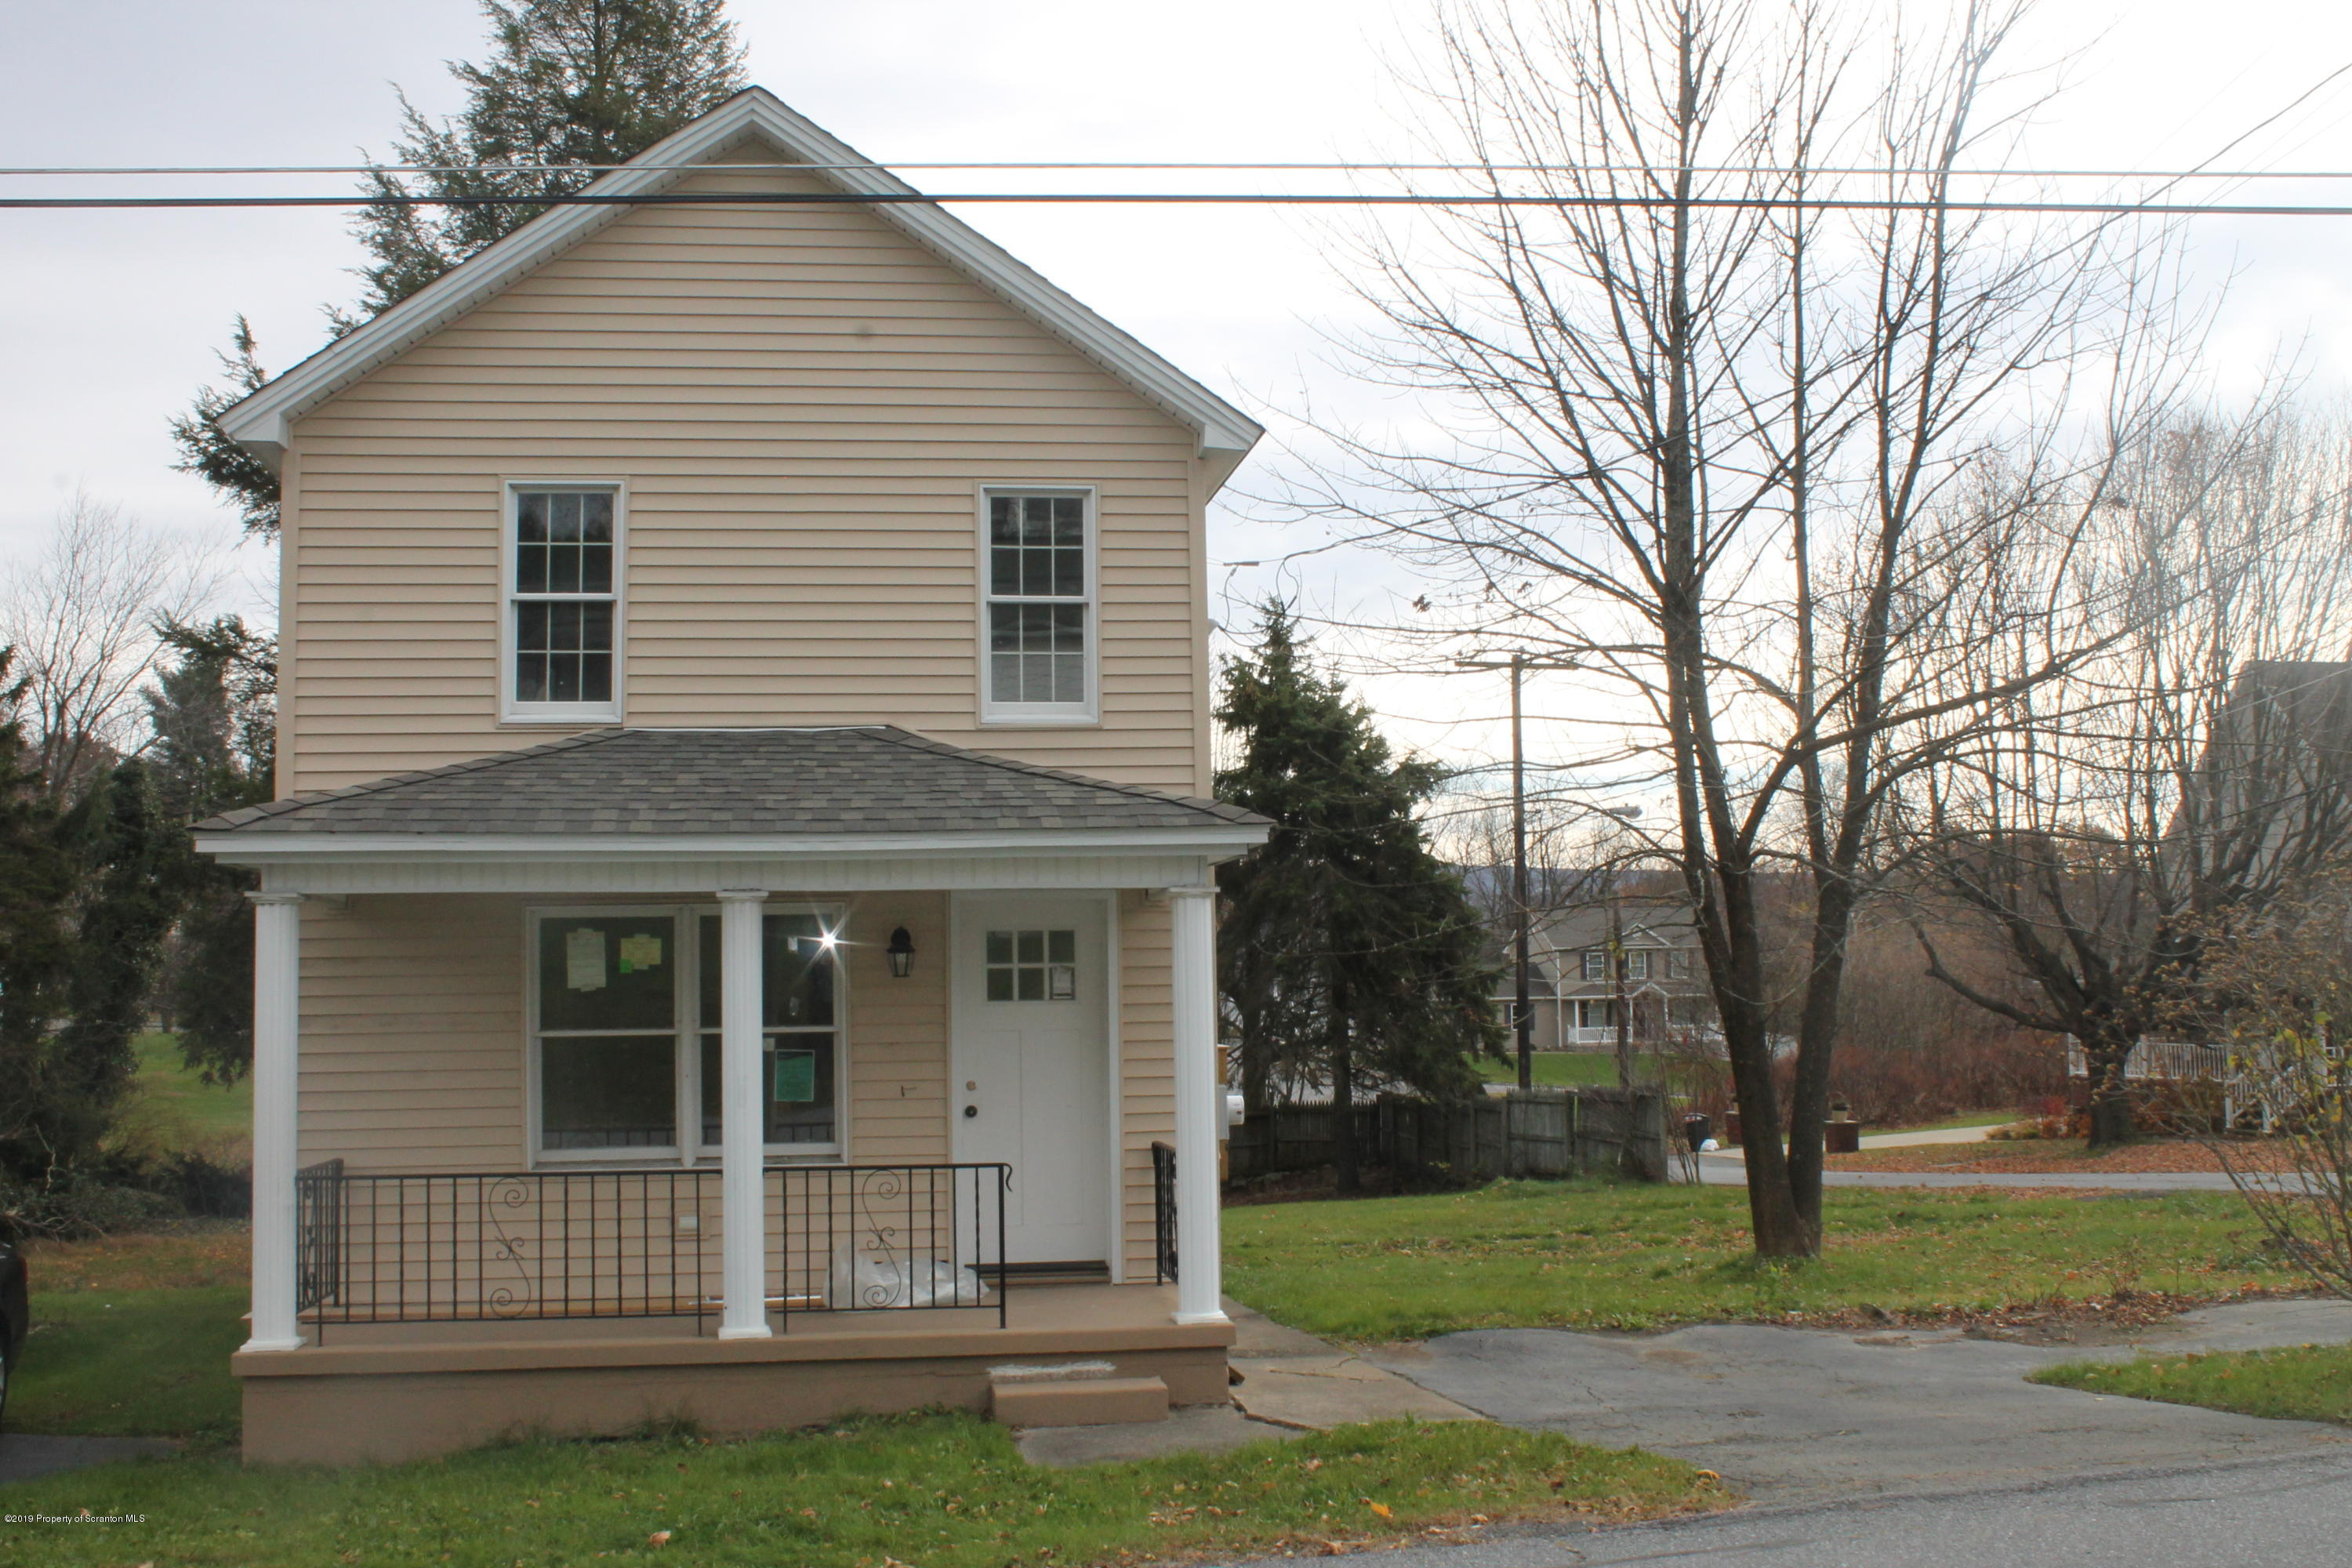 402 1st St, Archbald, Pennsylvania 18403, 2 Bedrooms Bedrooms, 5 Rooms Rooms,1 BathroomBathrooms,Single Family,For Sale,1st,19-5243